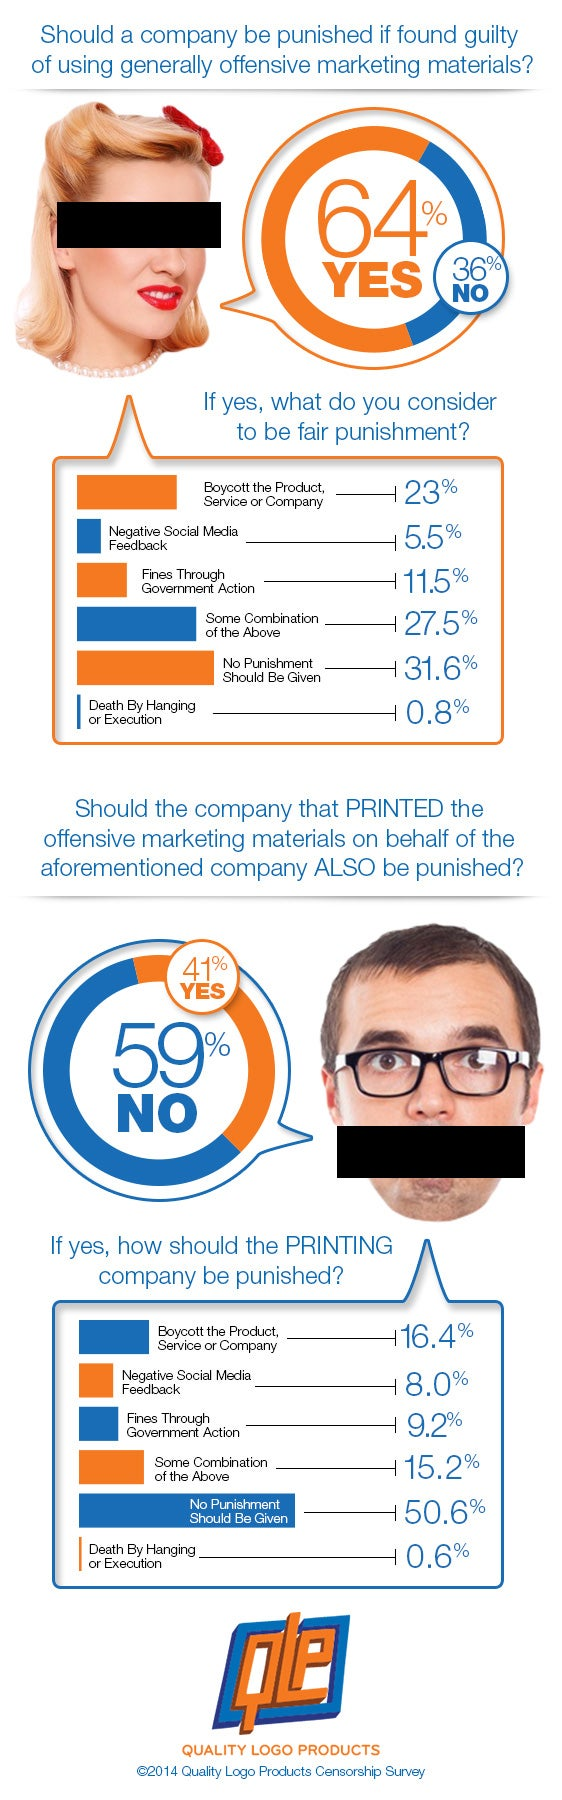 Censorship and Promotional Products Survey Results